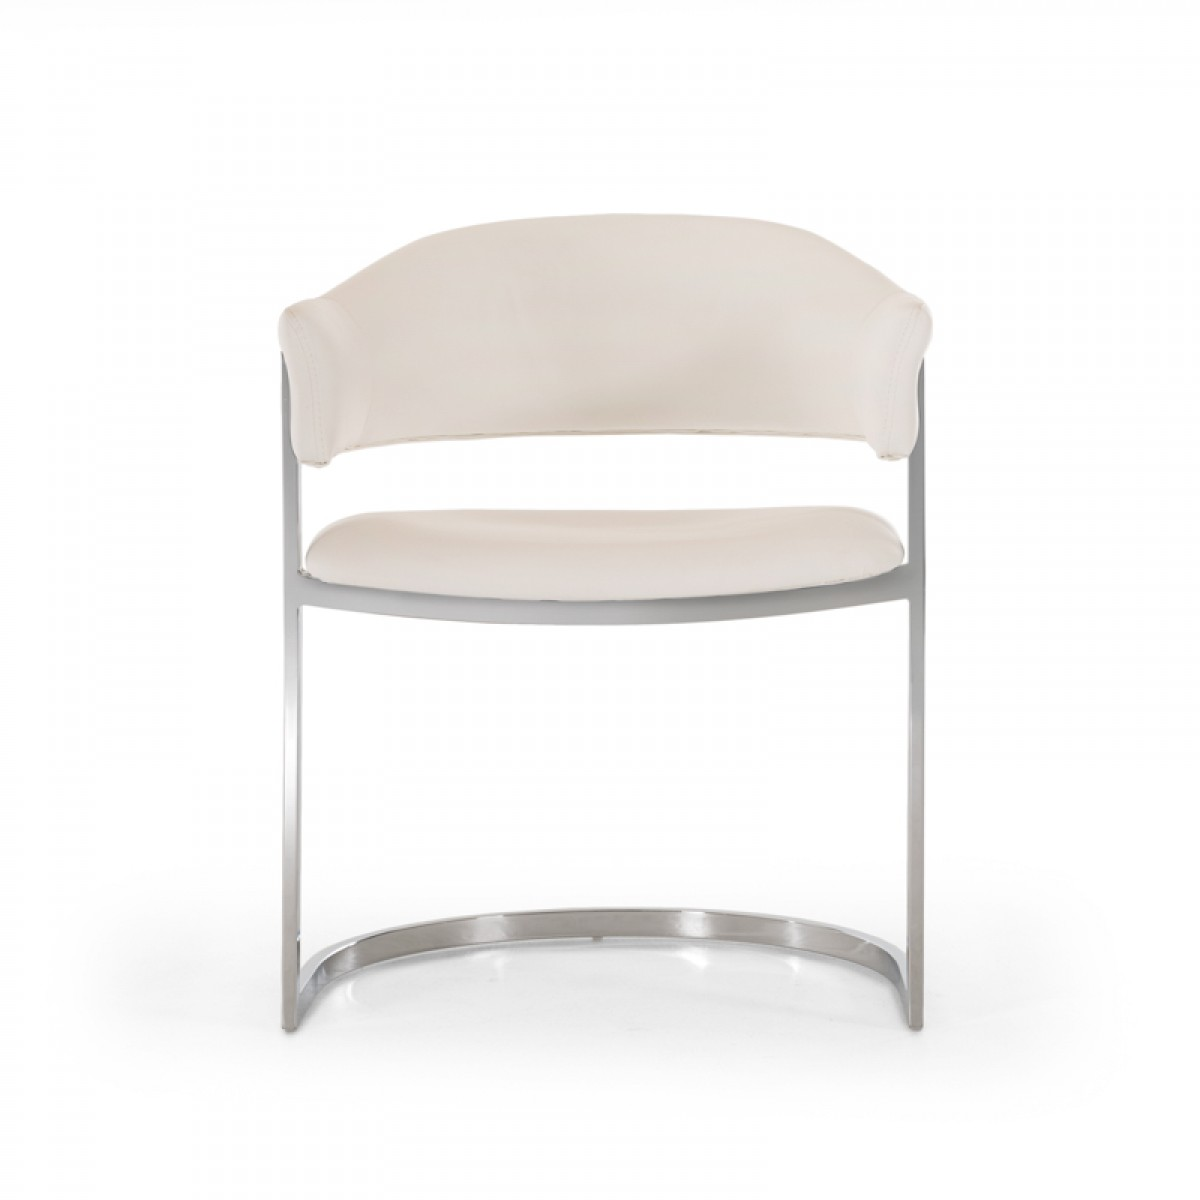 Modern White Dining Chair Modrest Allie Contemporary White Leatherette Dining Chair